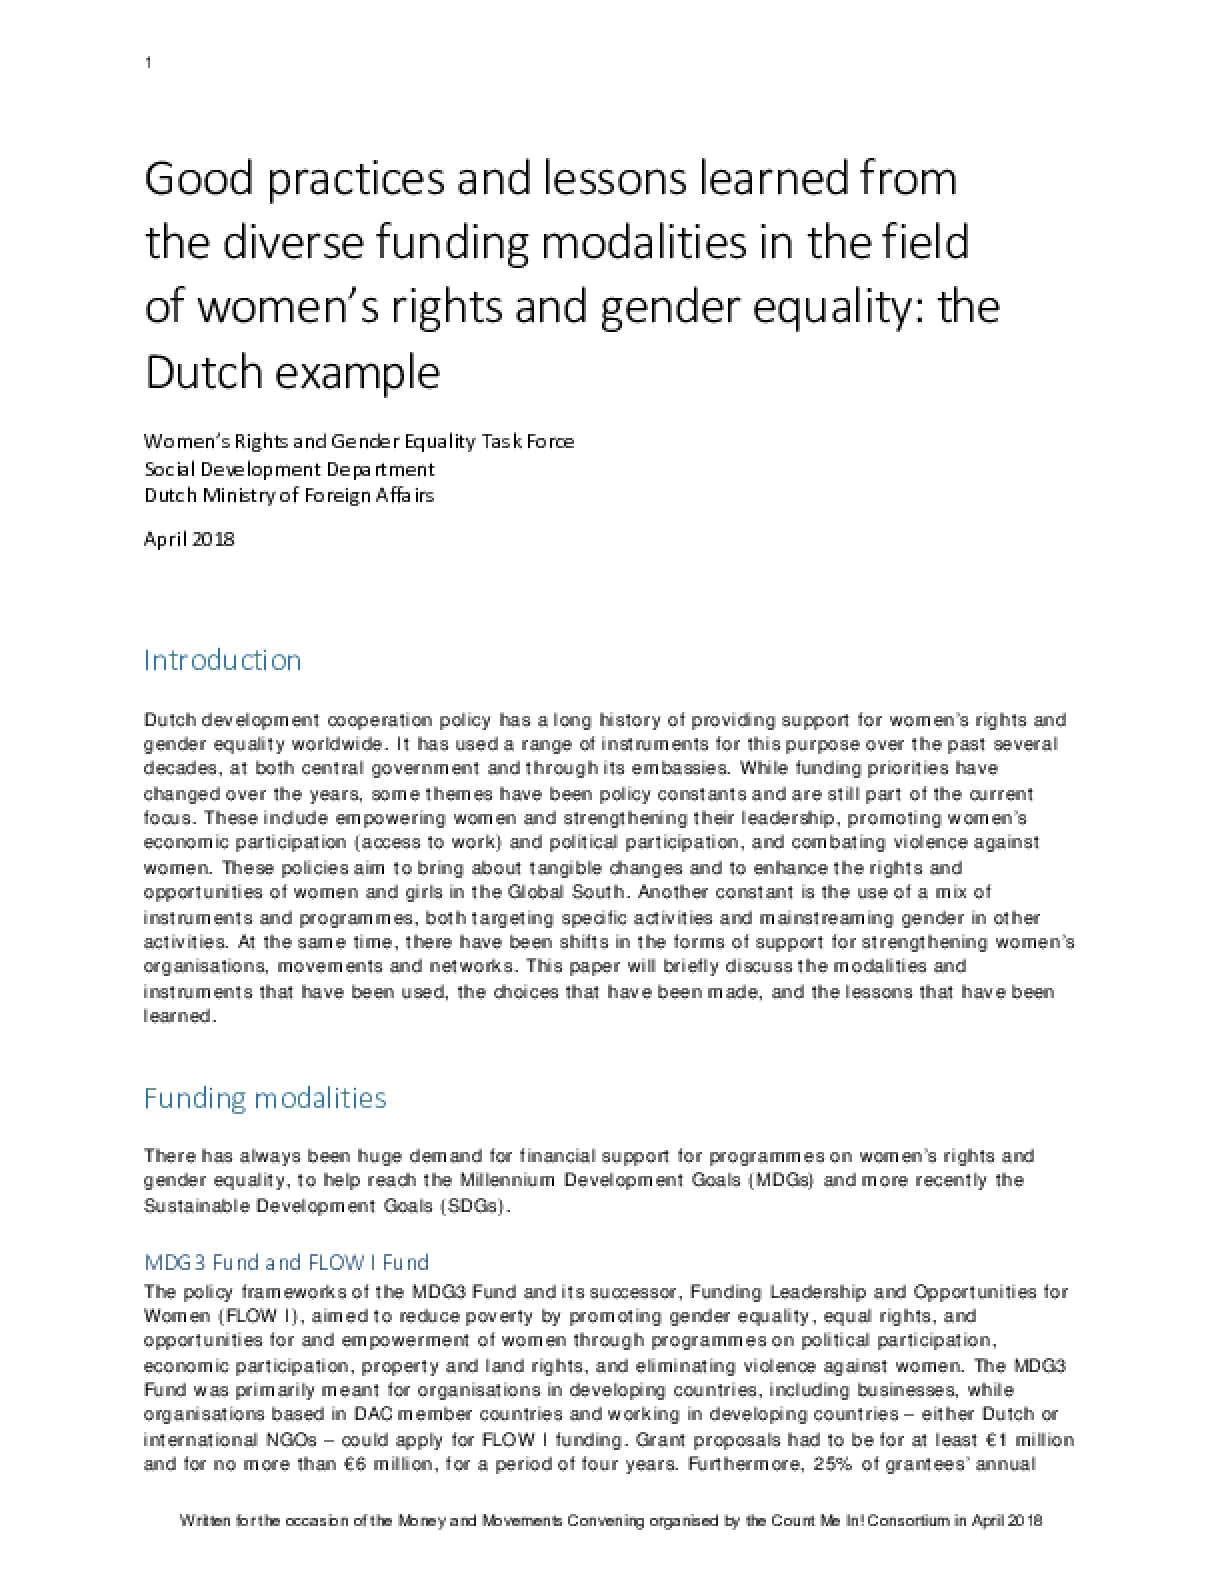 Good practices and lessons learned from the diverse funding modalities in the field of women's rights and gender equality: the Dutch example